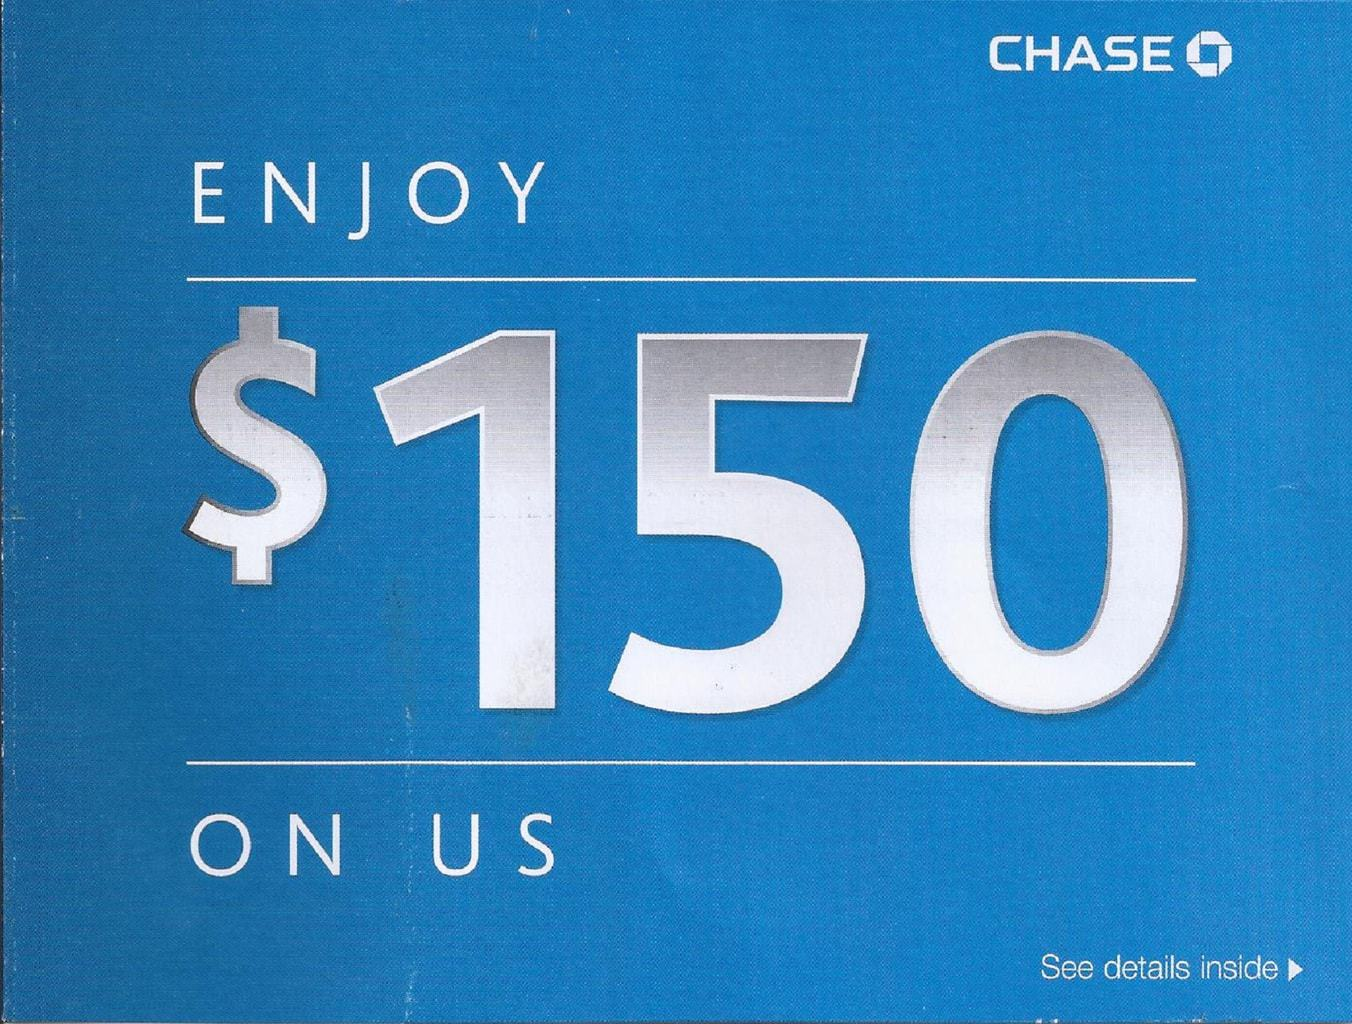 20% Annual Return Chase Checking Account